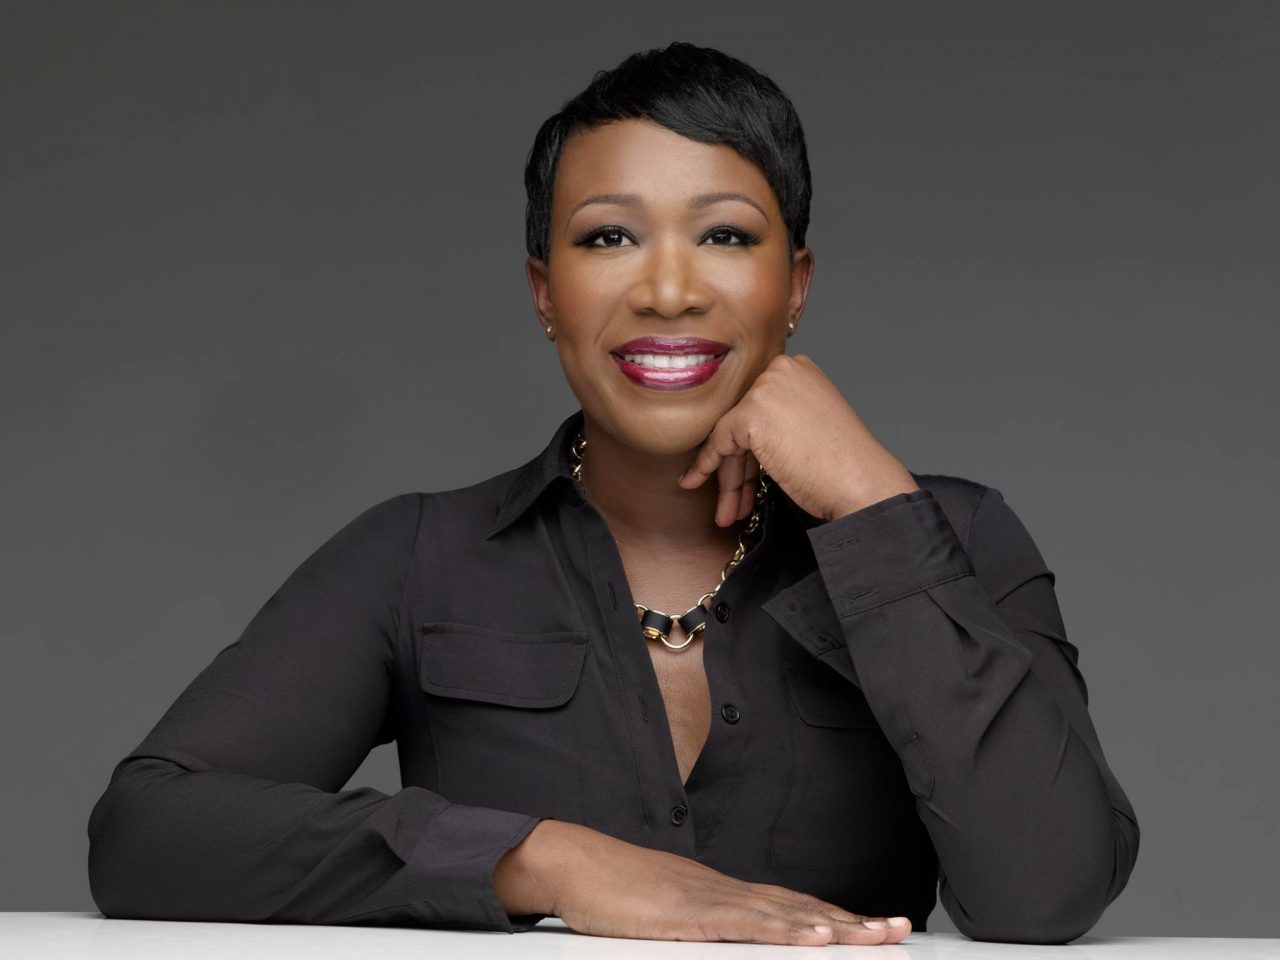 MSNBC's Joy Reid Named Host of 'The ReidOut' Making Her First Black Woman to Host Nightly Evening News Show - Black Enterprise